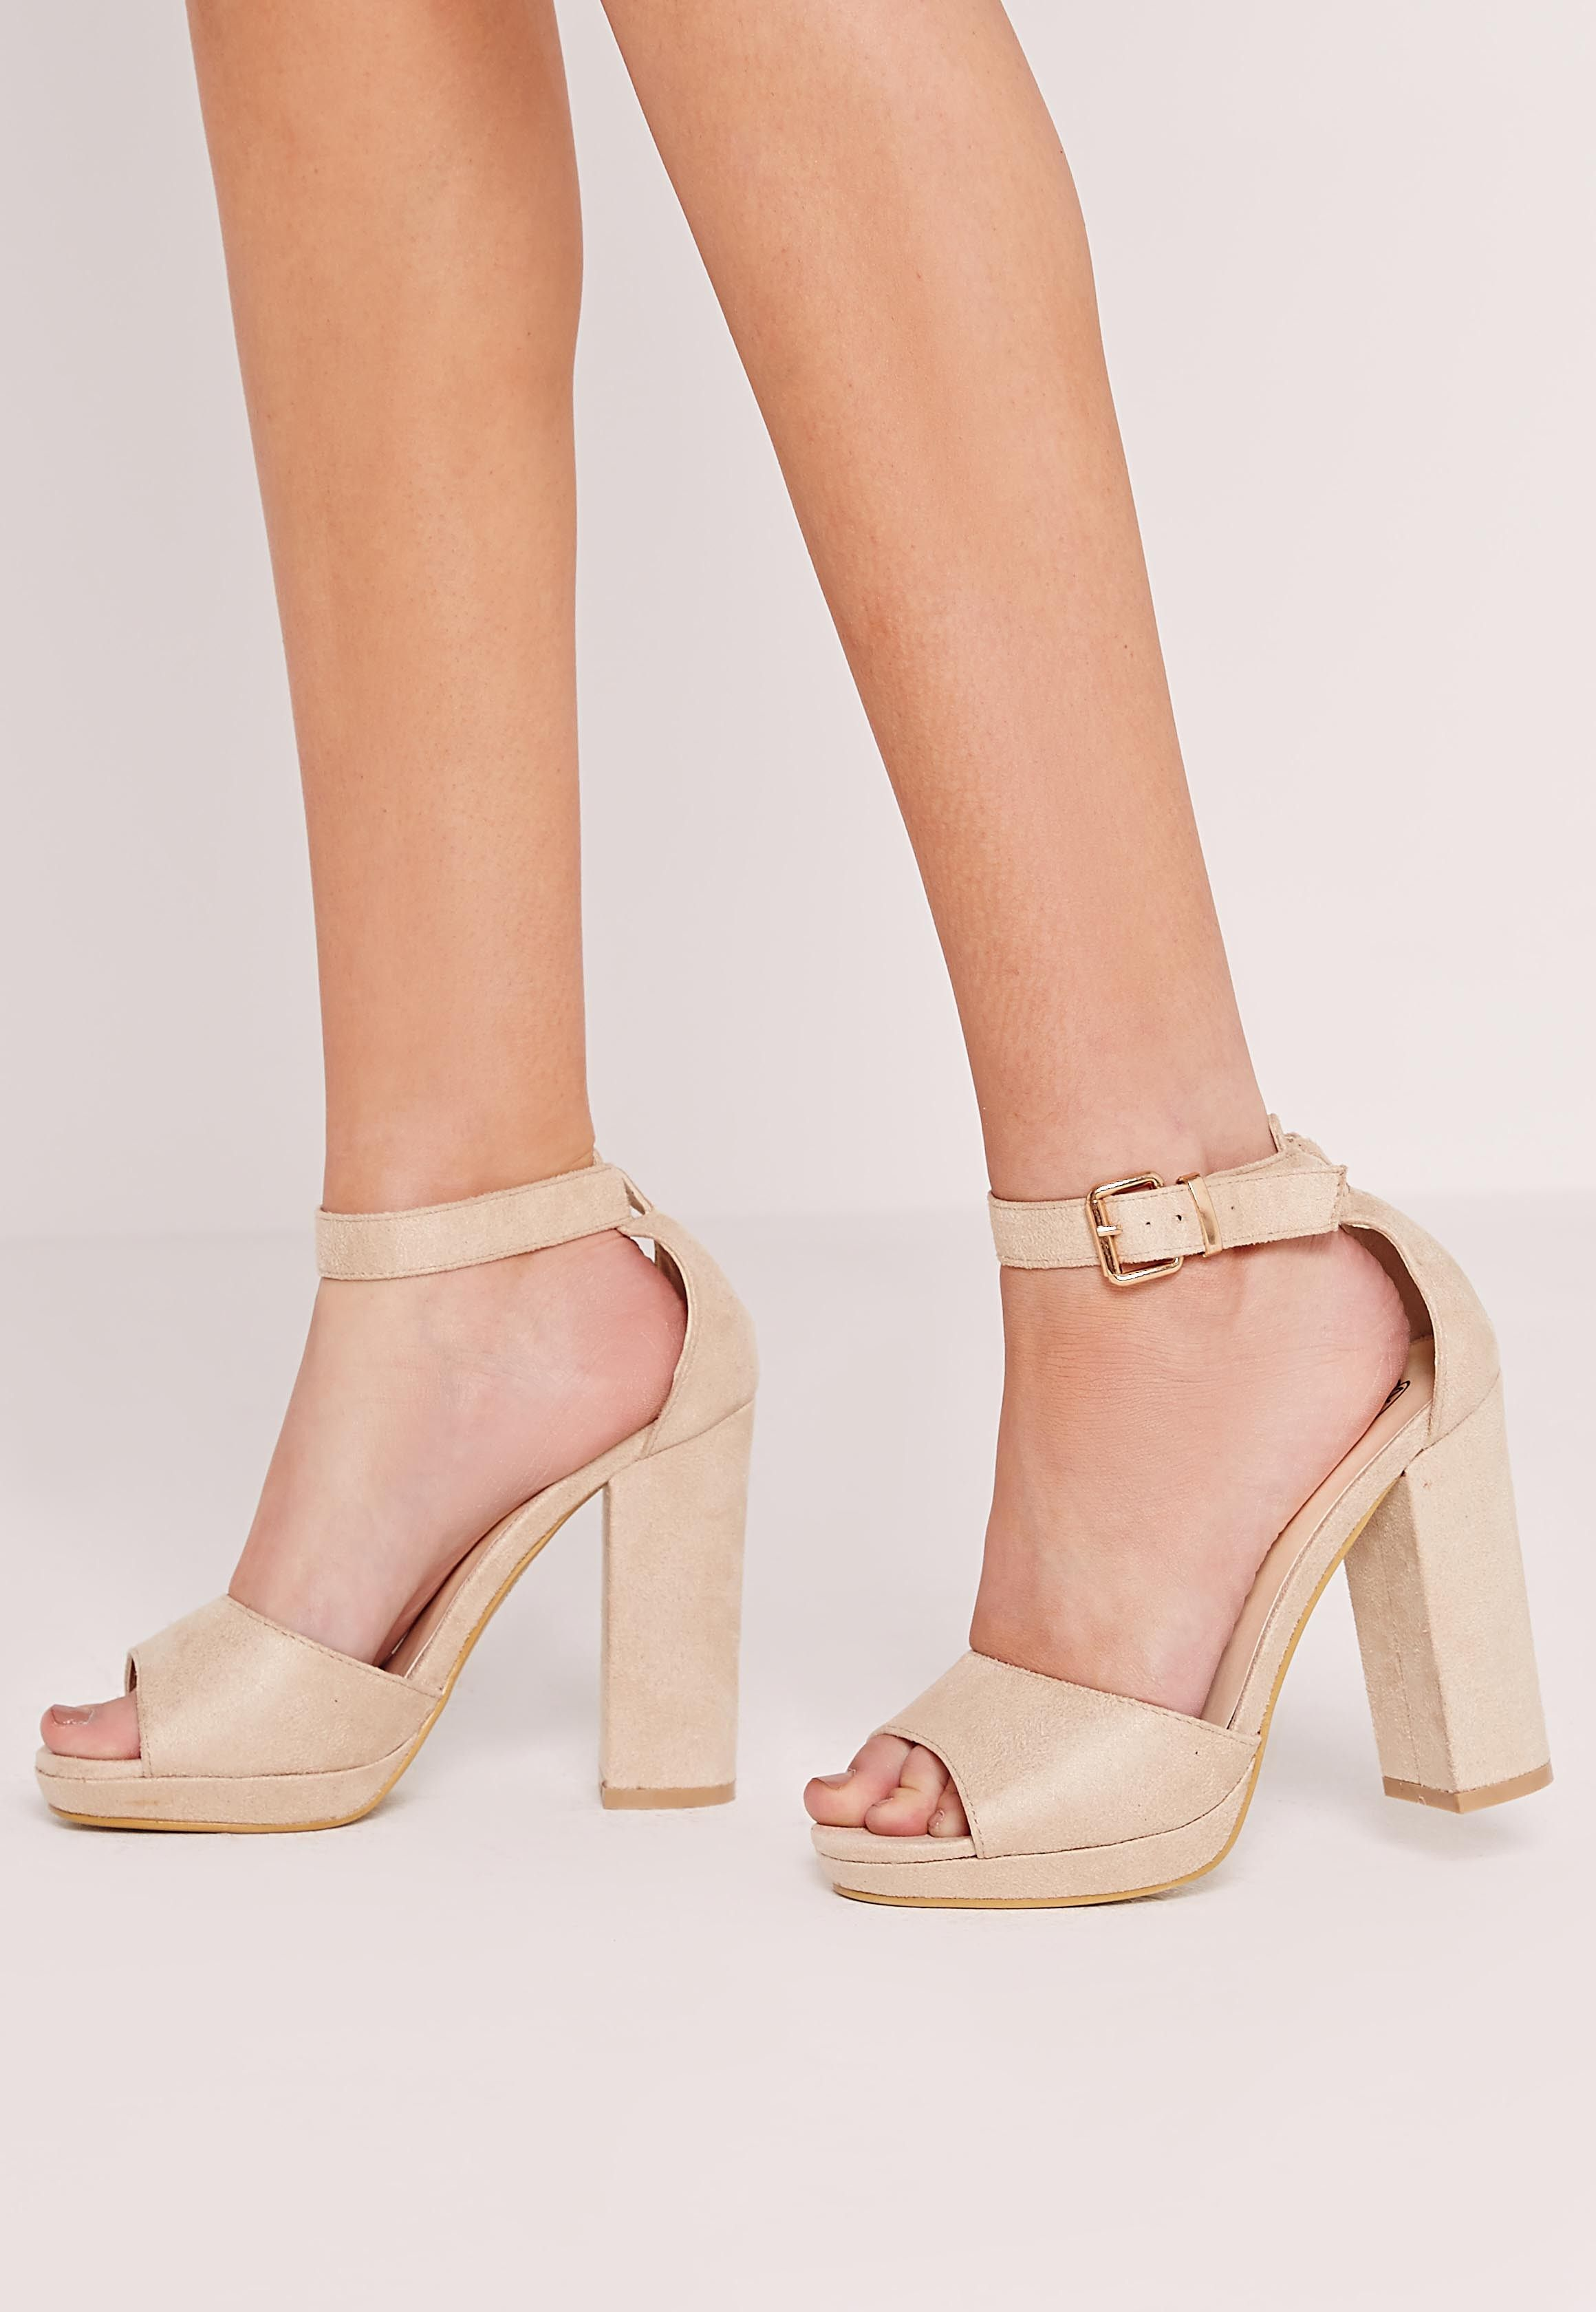 9d18435817e Missguided - Platform Block Heel Barely There Sandals Nude